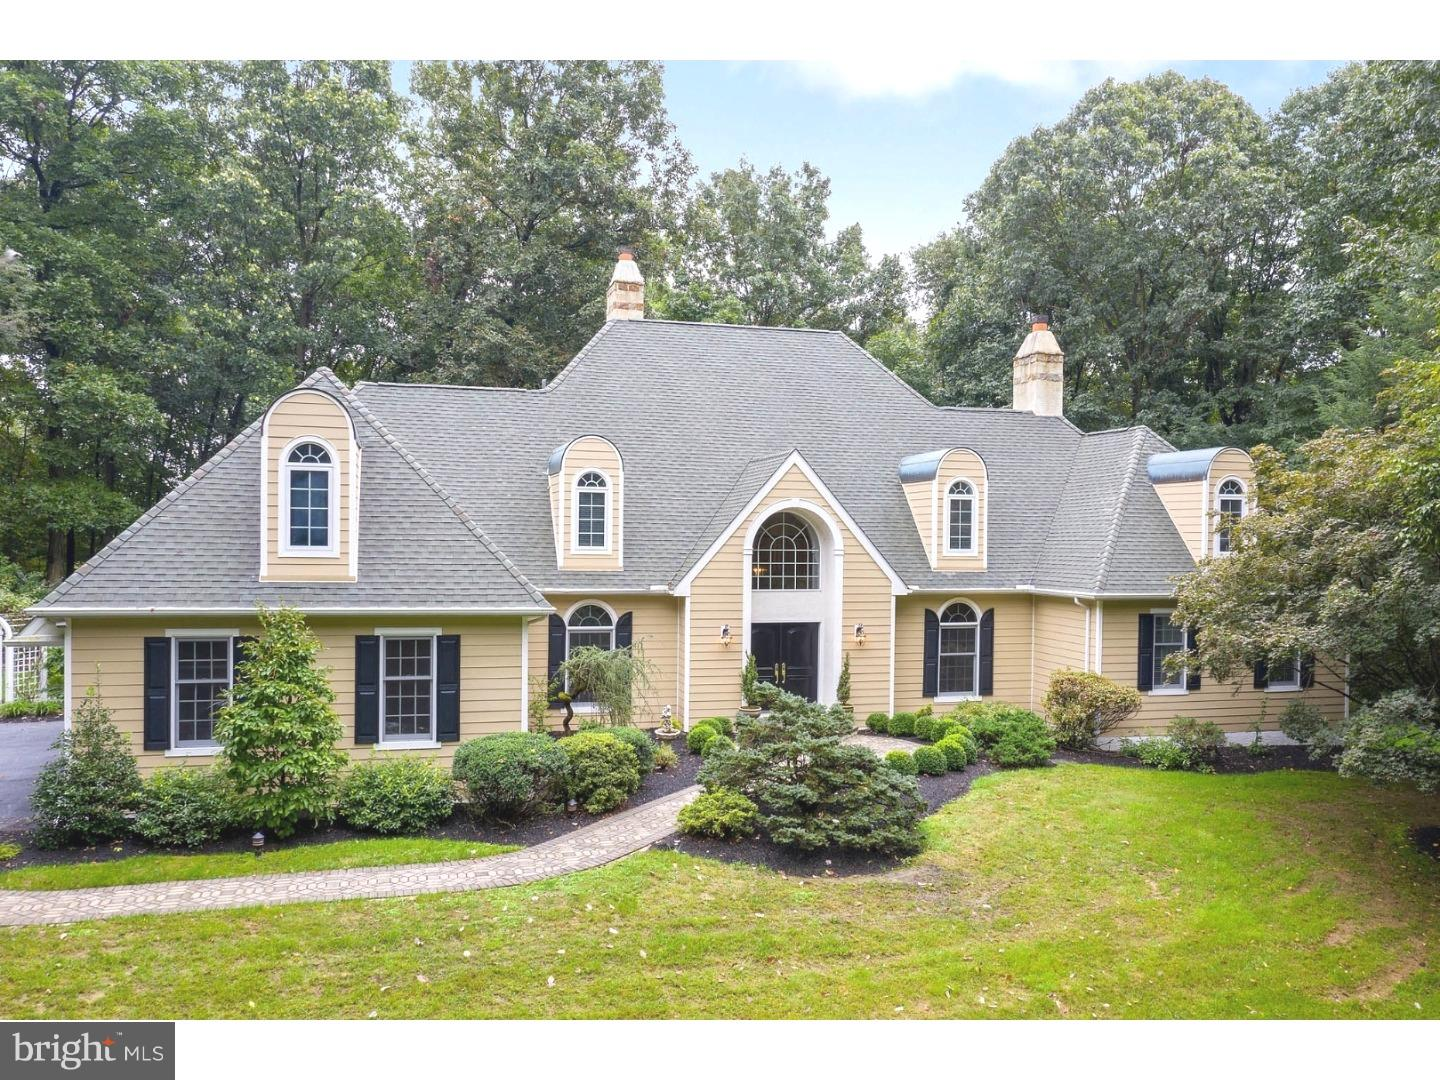 1807 Chestnut Hollow Ln West Chester Pa 19382 Mls